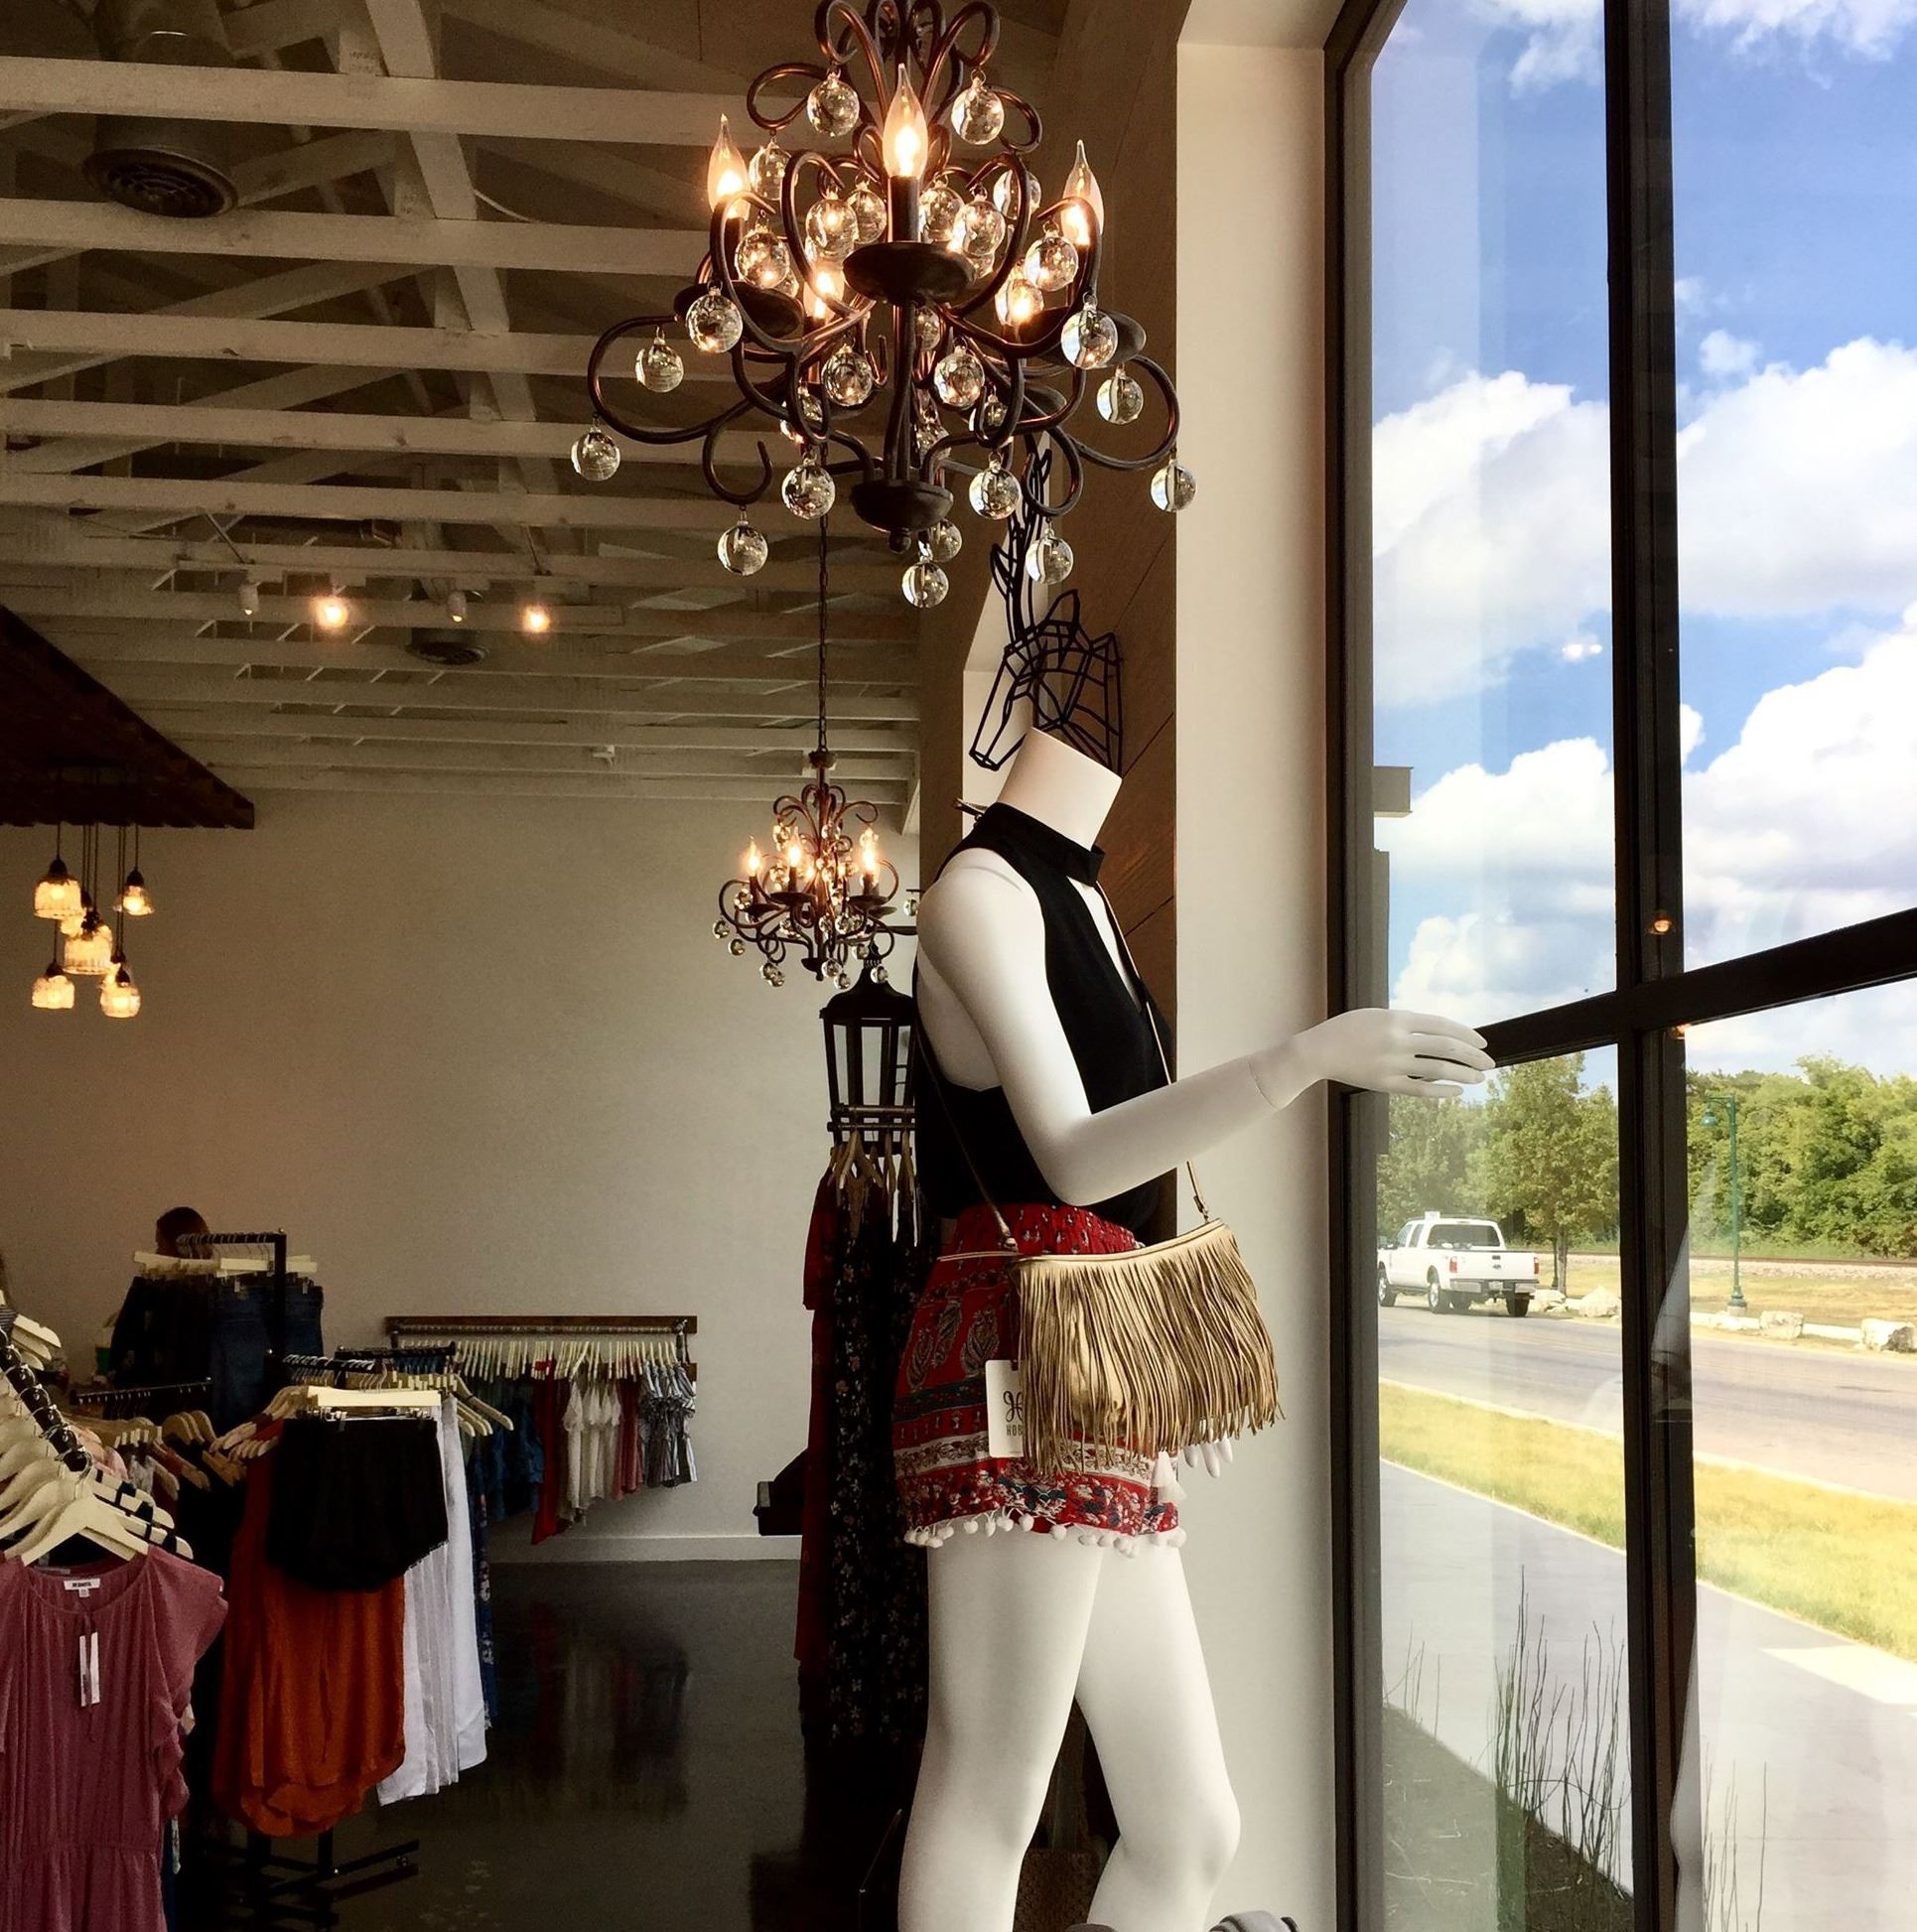 View of window inside Ellipsis Boutique